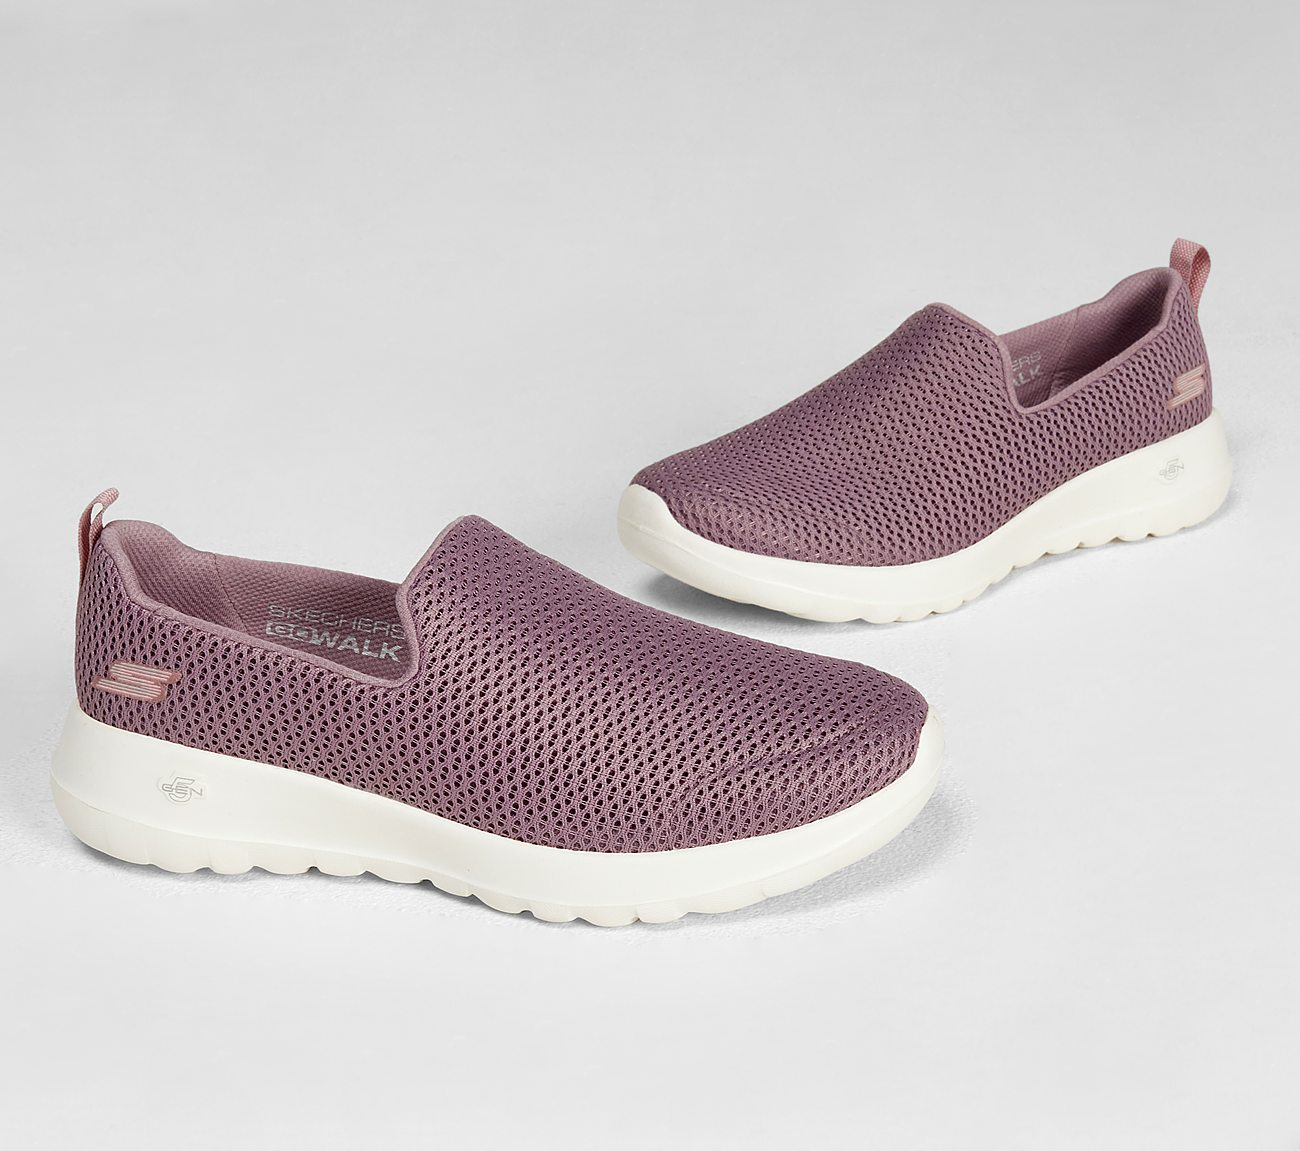 skechers on the go walking shoes